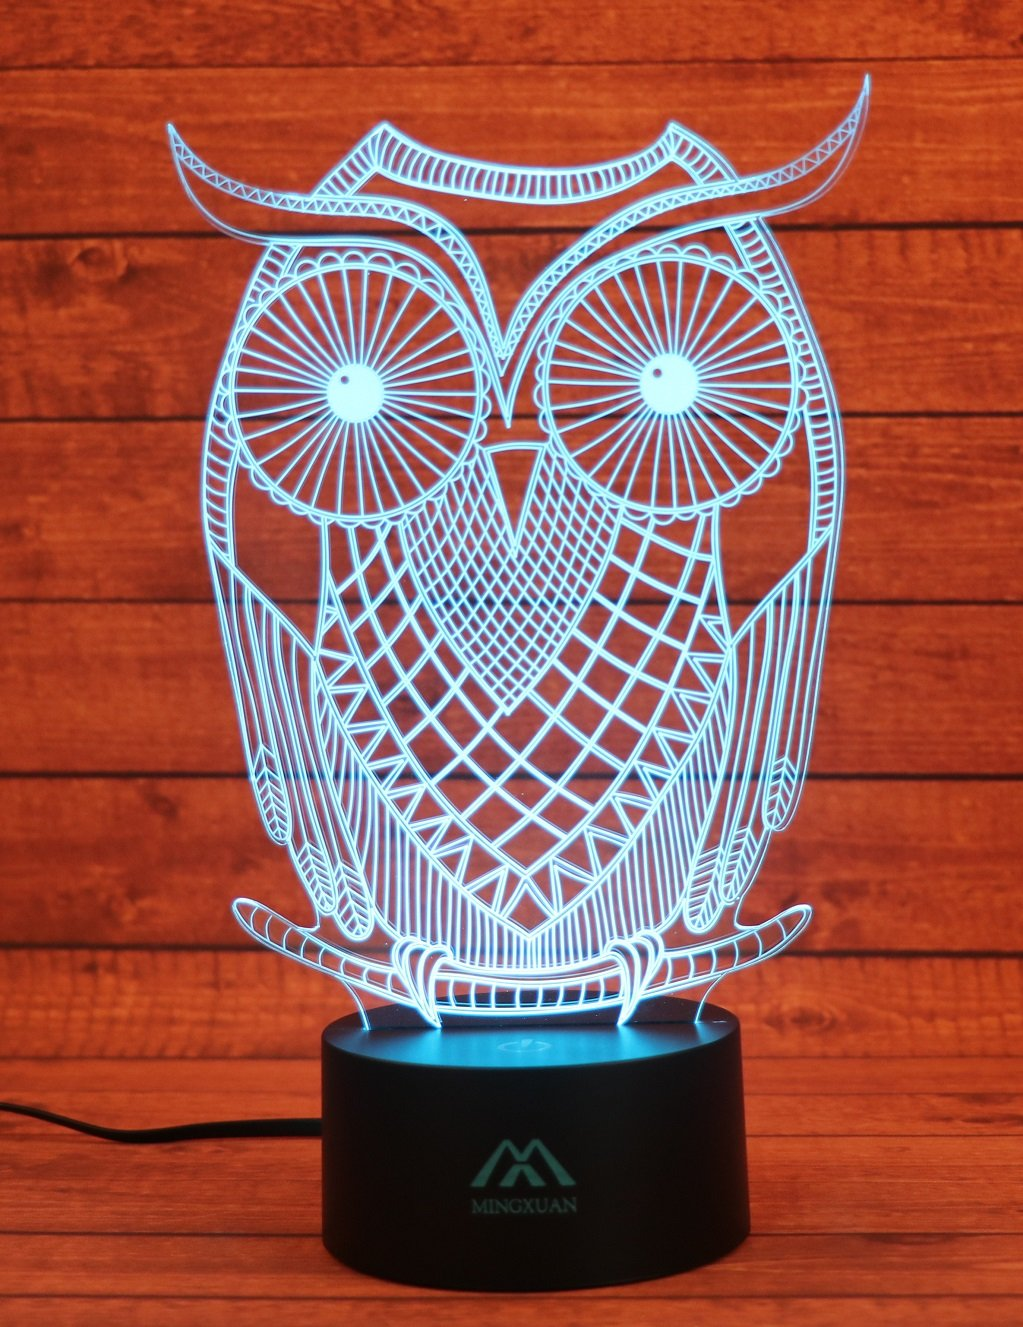 3D Owl Night light Animal 7 Colors Amazing Optical Illusion LED light home decorations produce unique lighting effects… by MingXuan